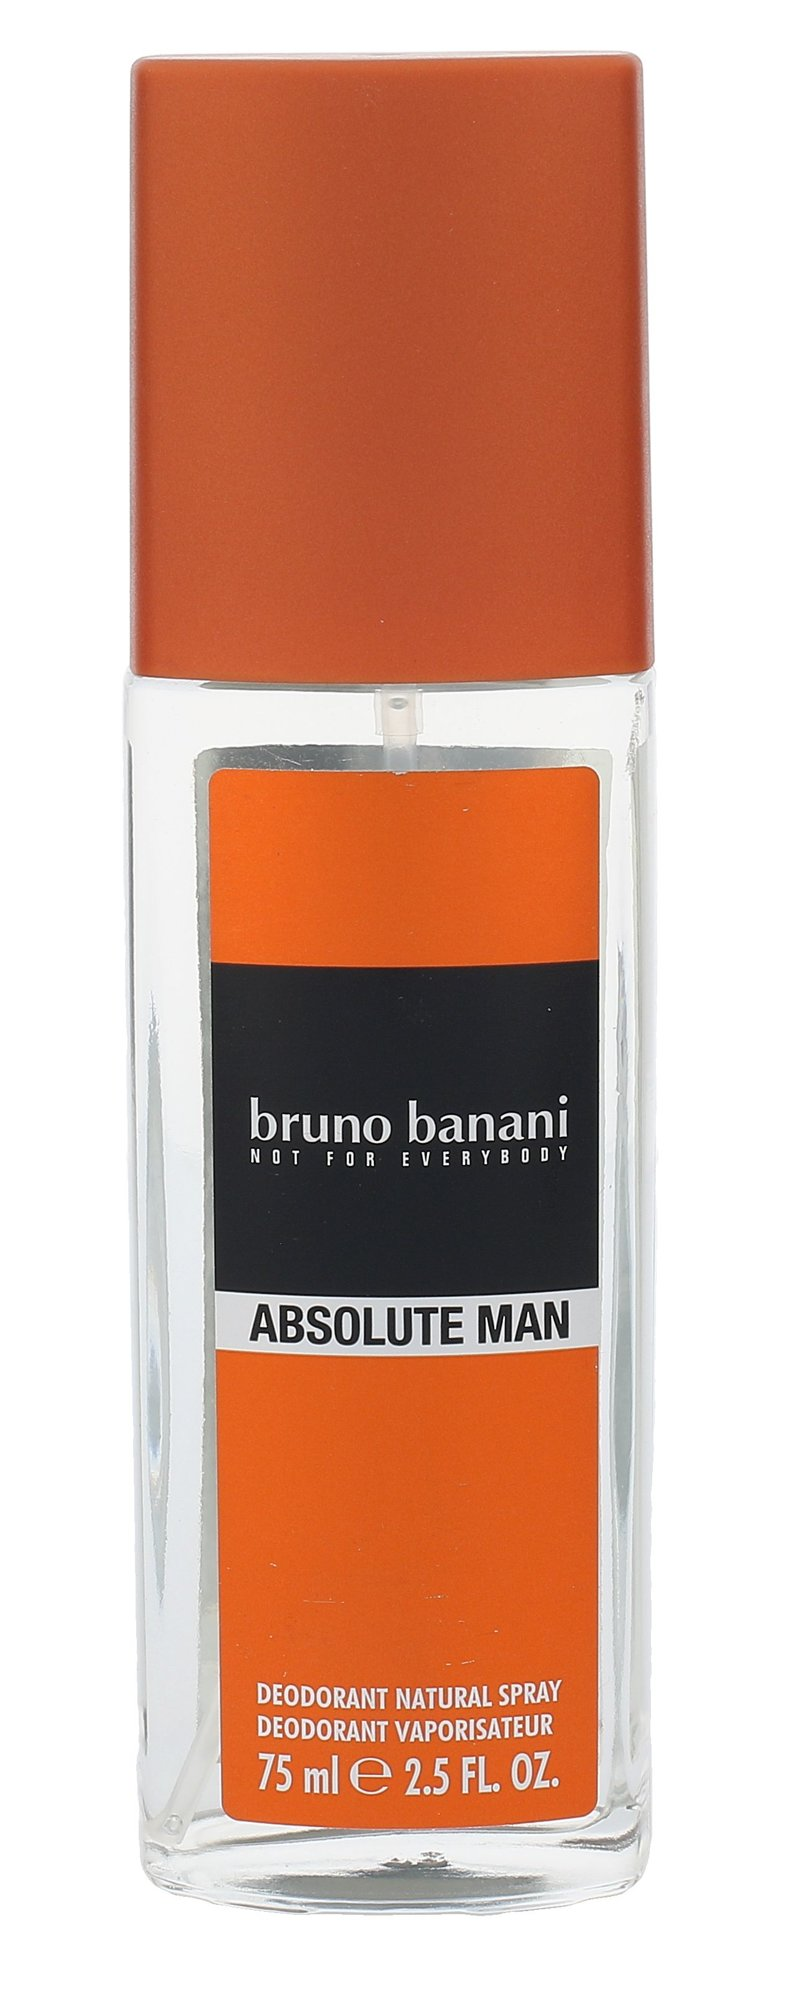 Bruno Banani Absolute Man Deodorant 75ml